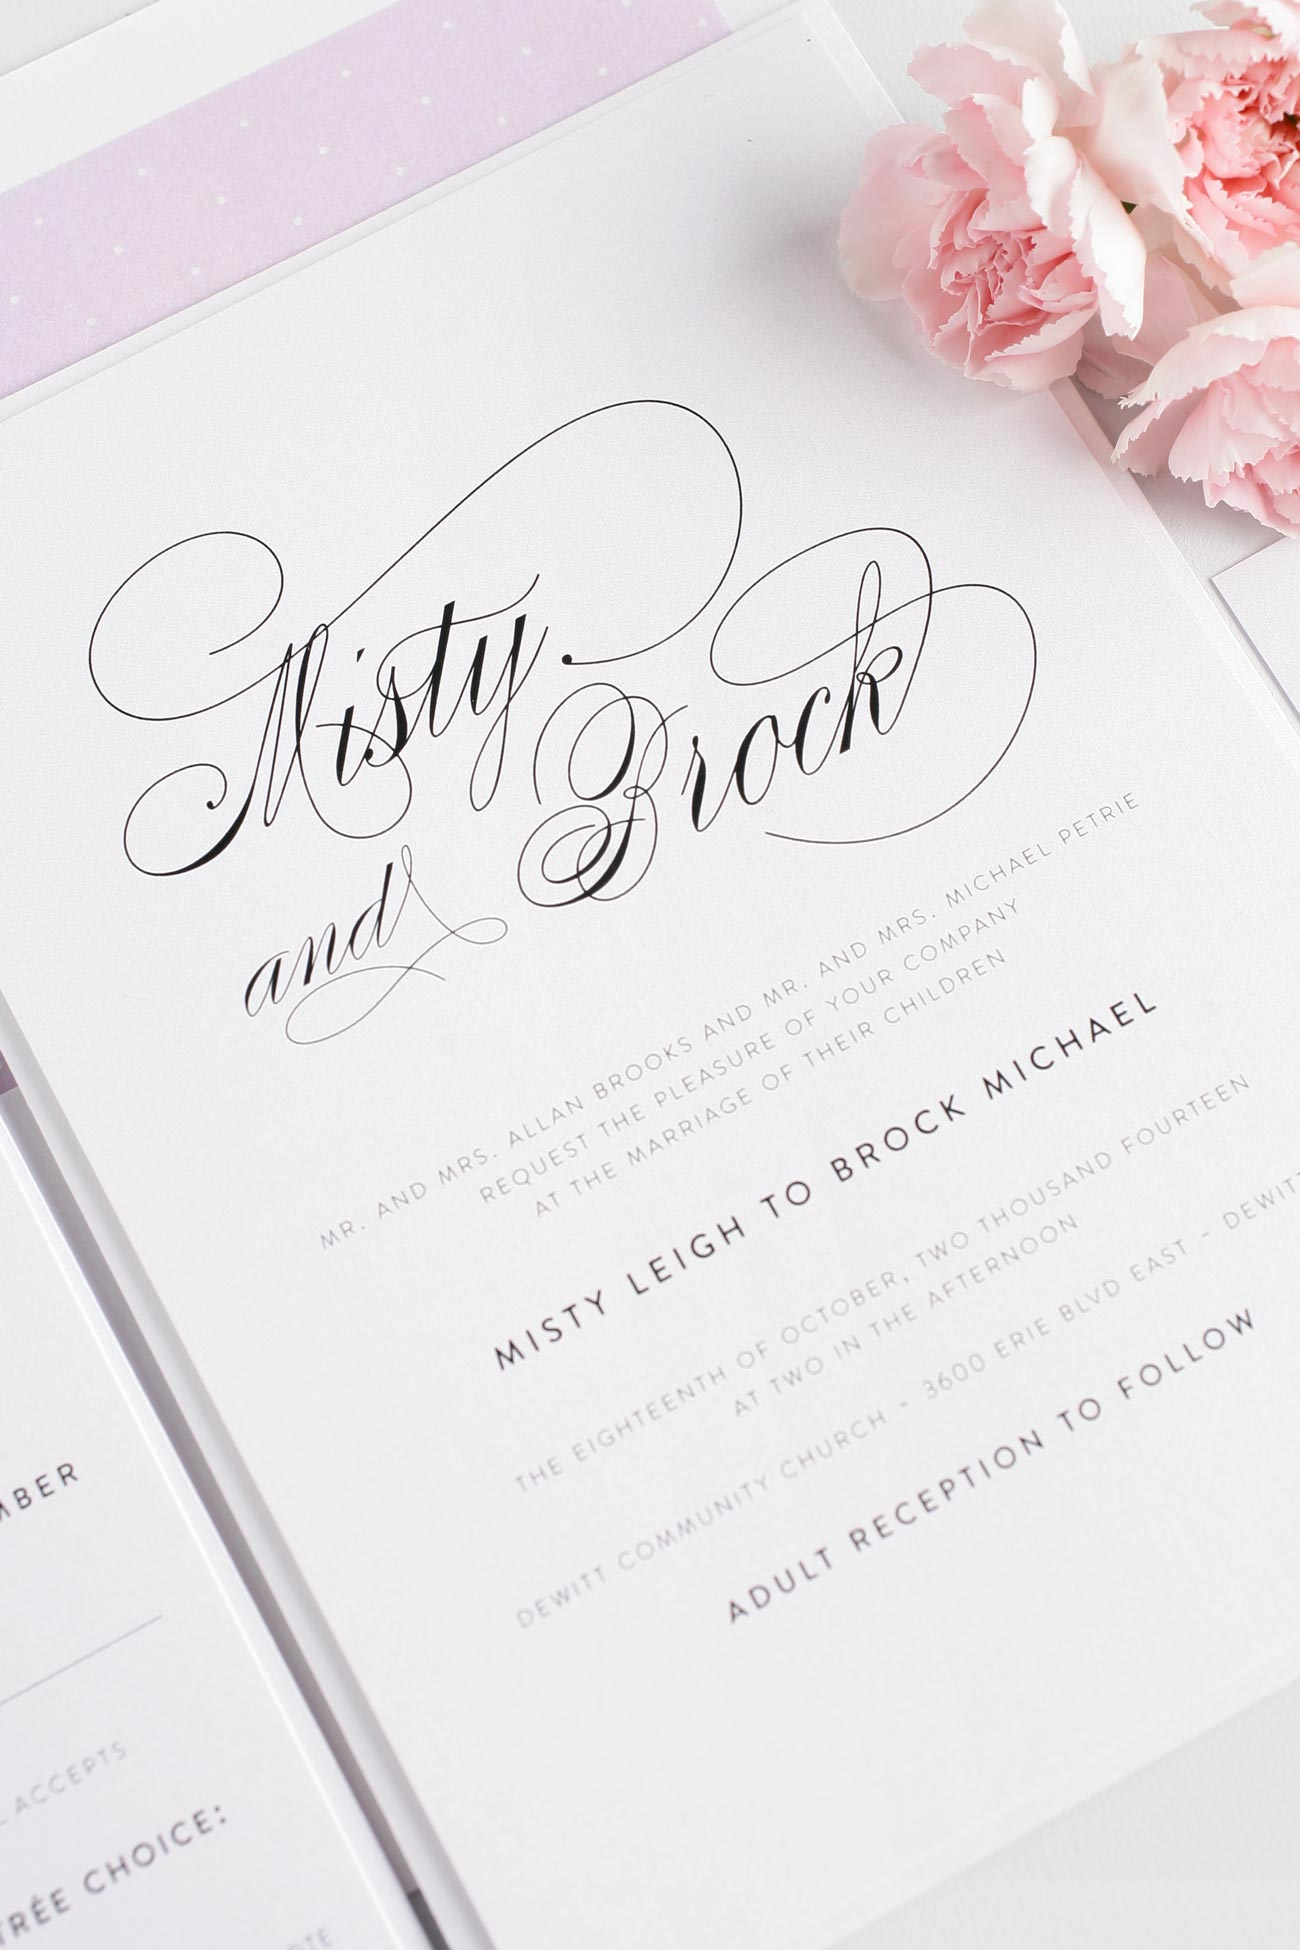 Elegant script wedding invitations in purple